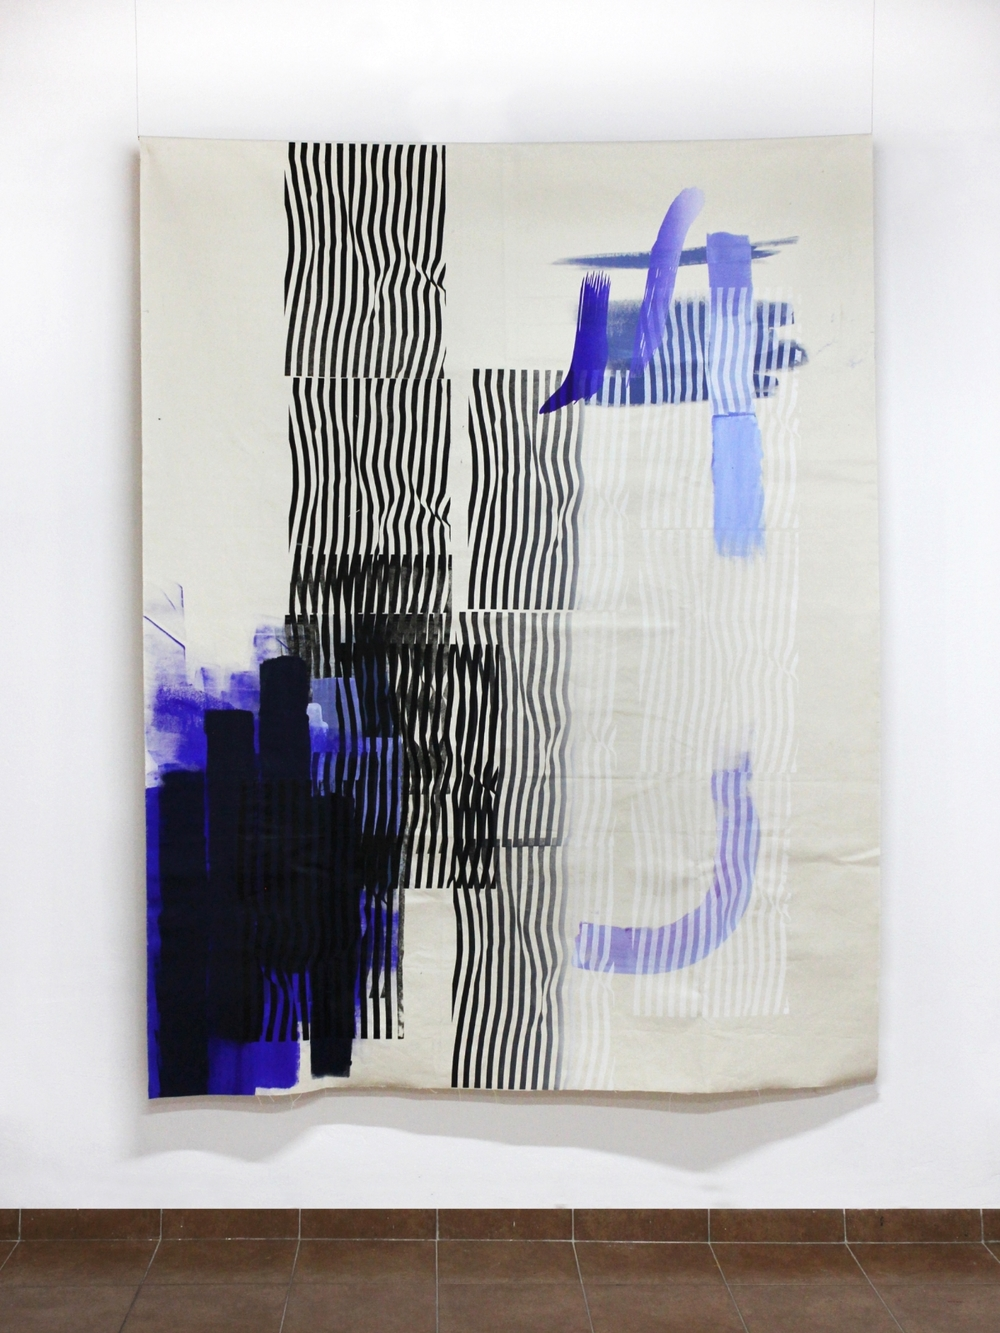 Fay Nicolson, Work that Weaves, 2015